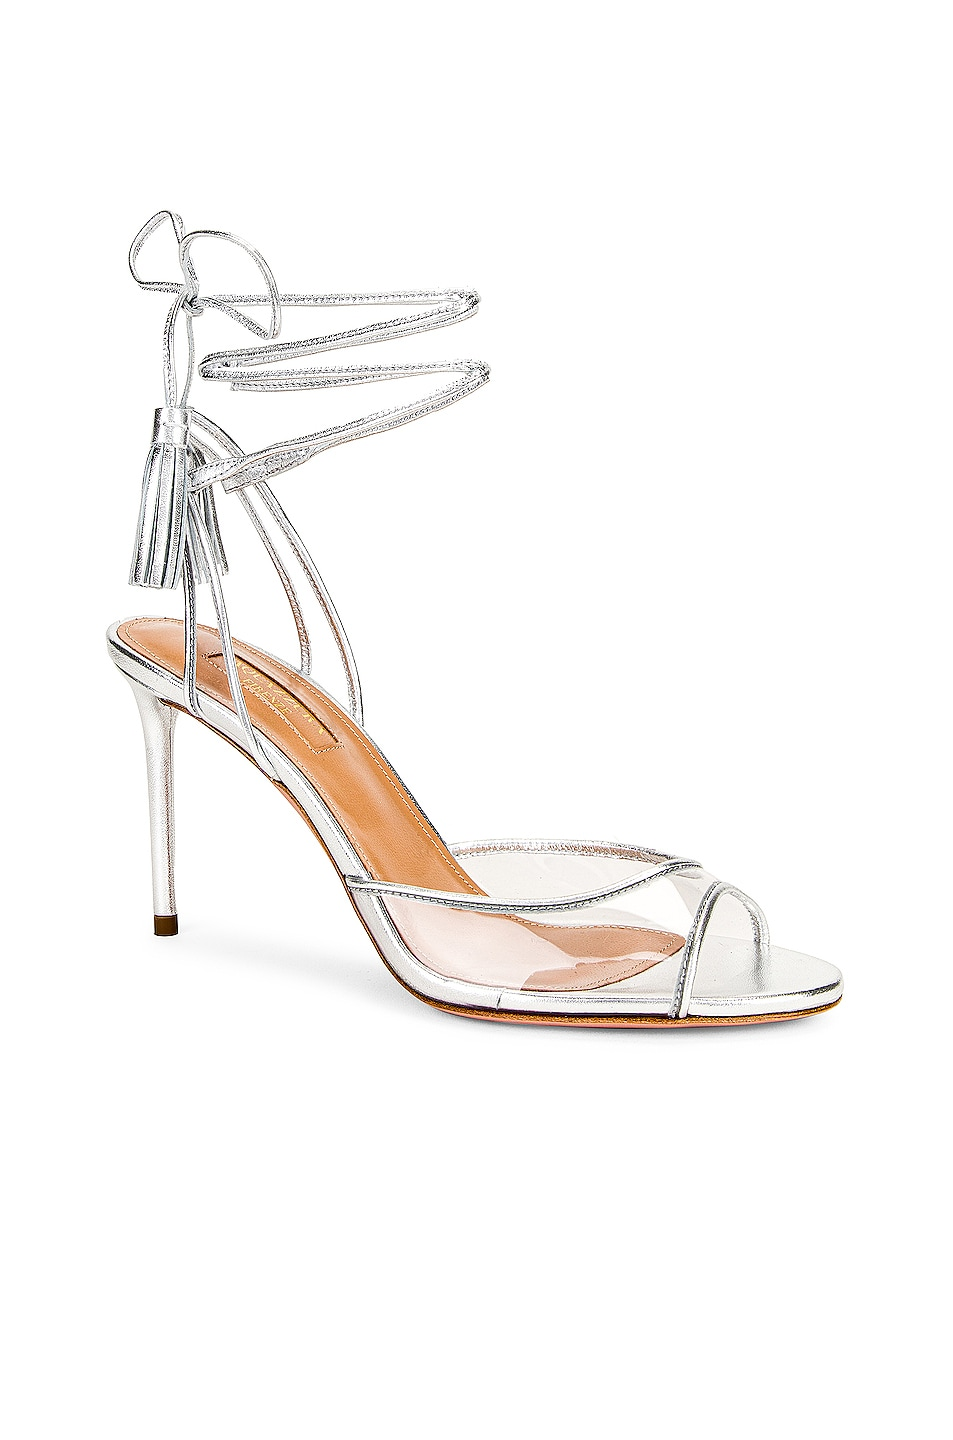 Image 1 of Aquazzura Nudist 85 Sandal in Silver